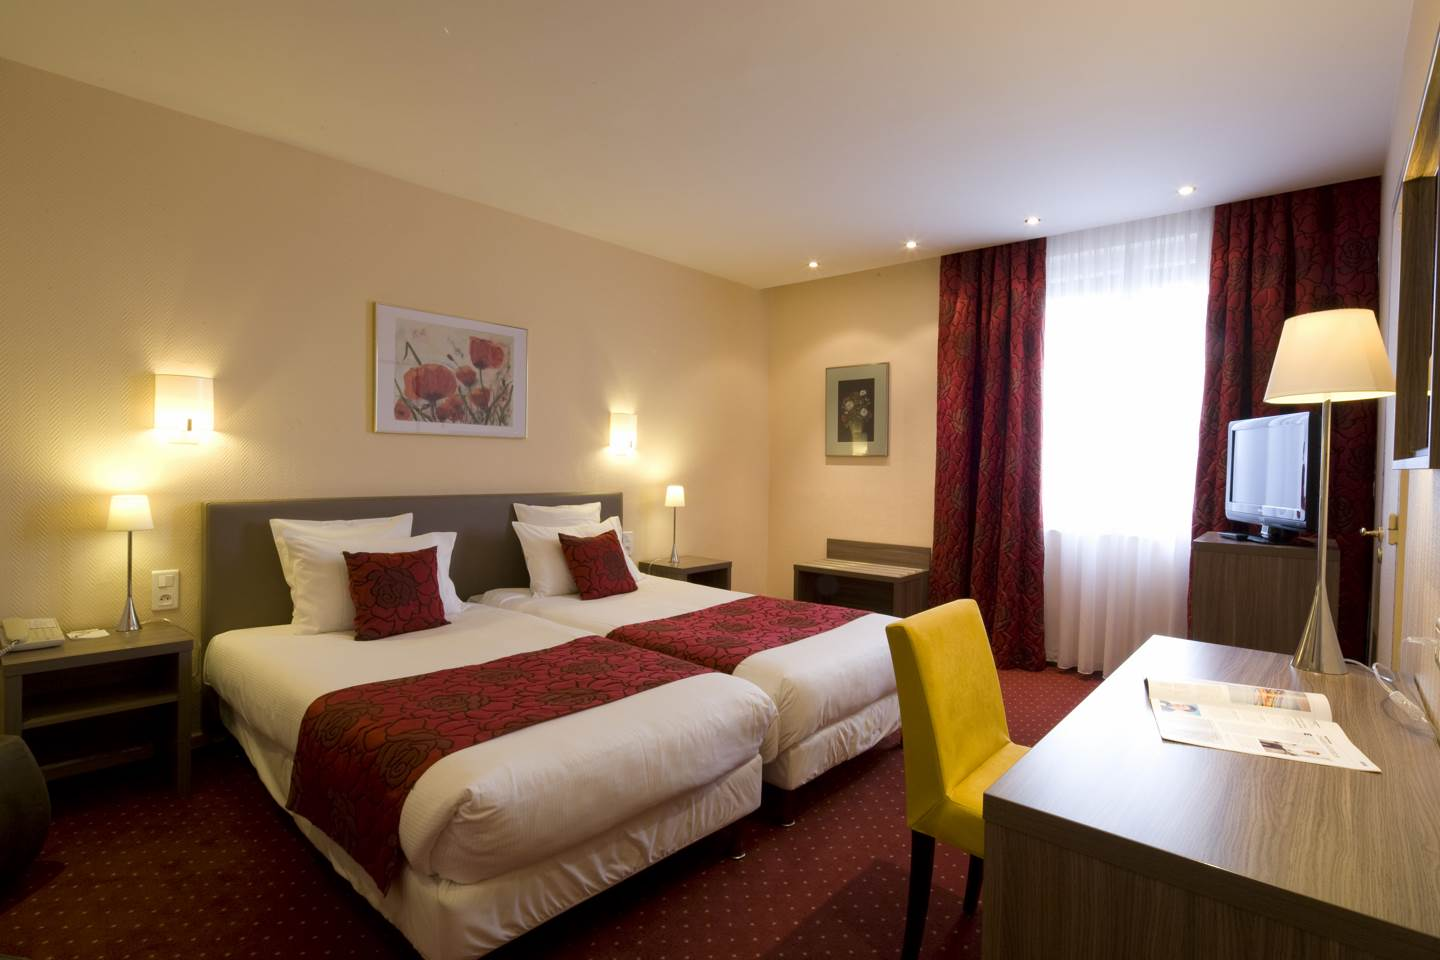 Chambres suites chambre sup rieure hotel colmar for Decoration chambres hotel